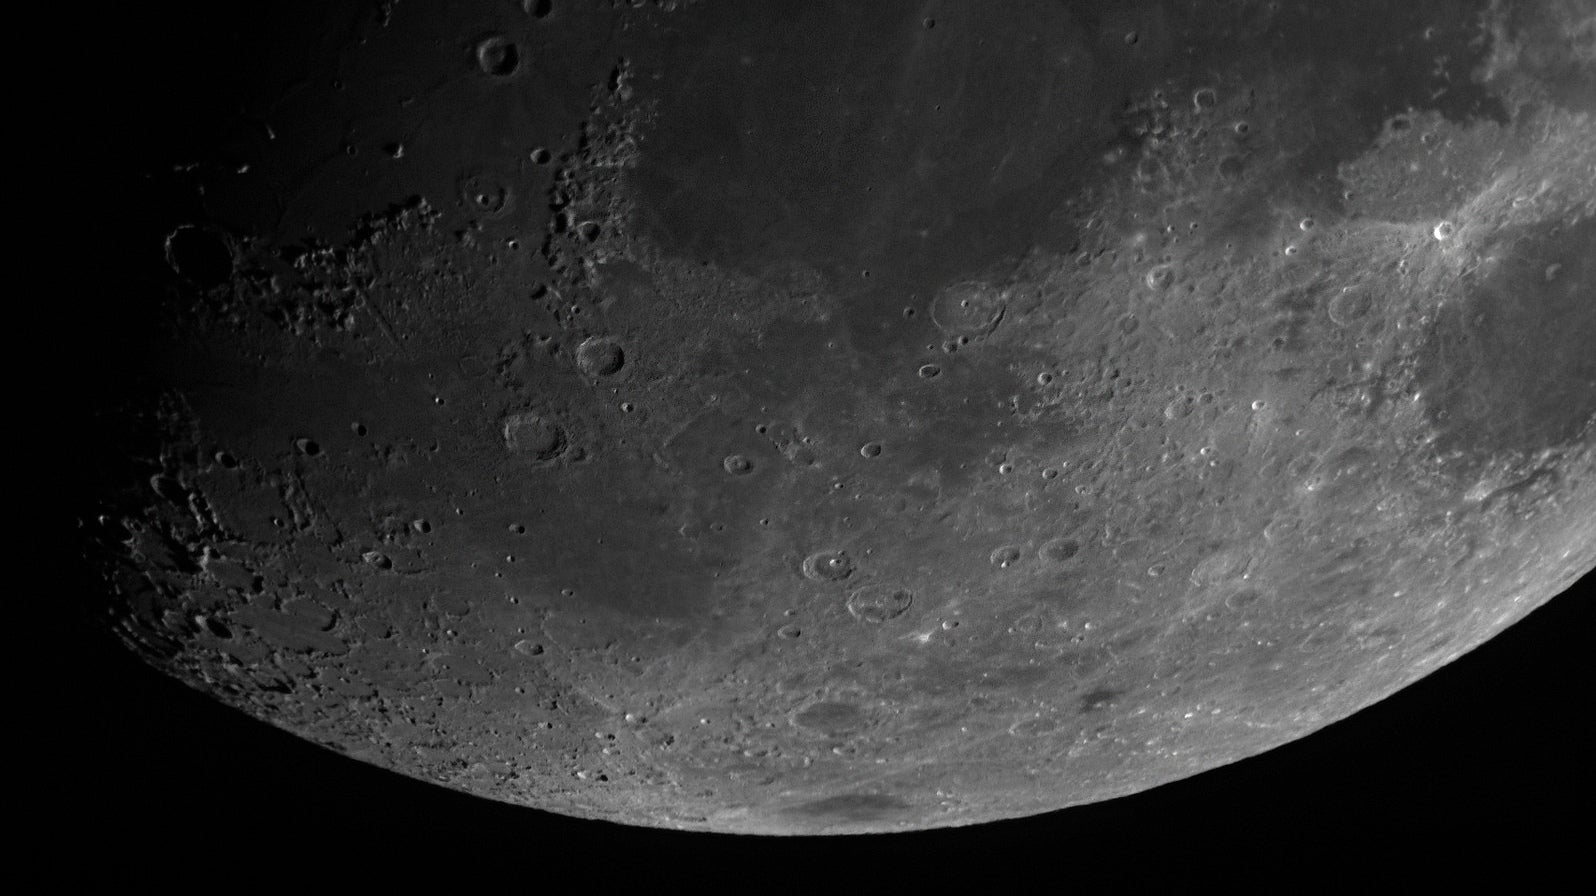 There's Water Ice On The Moon, But Less Than Expected